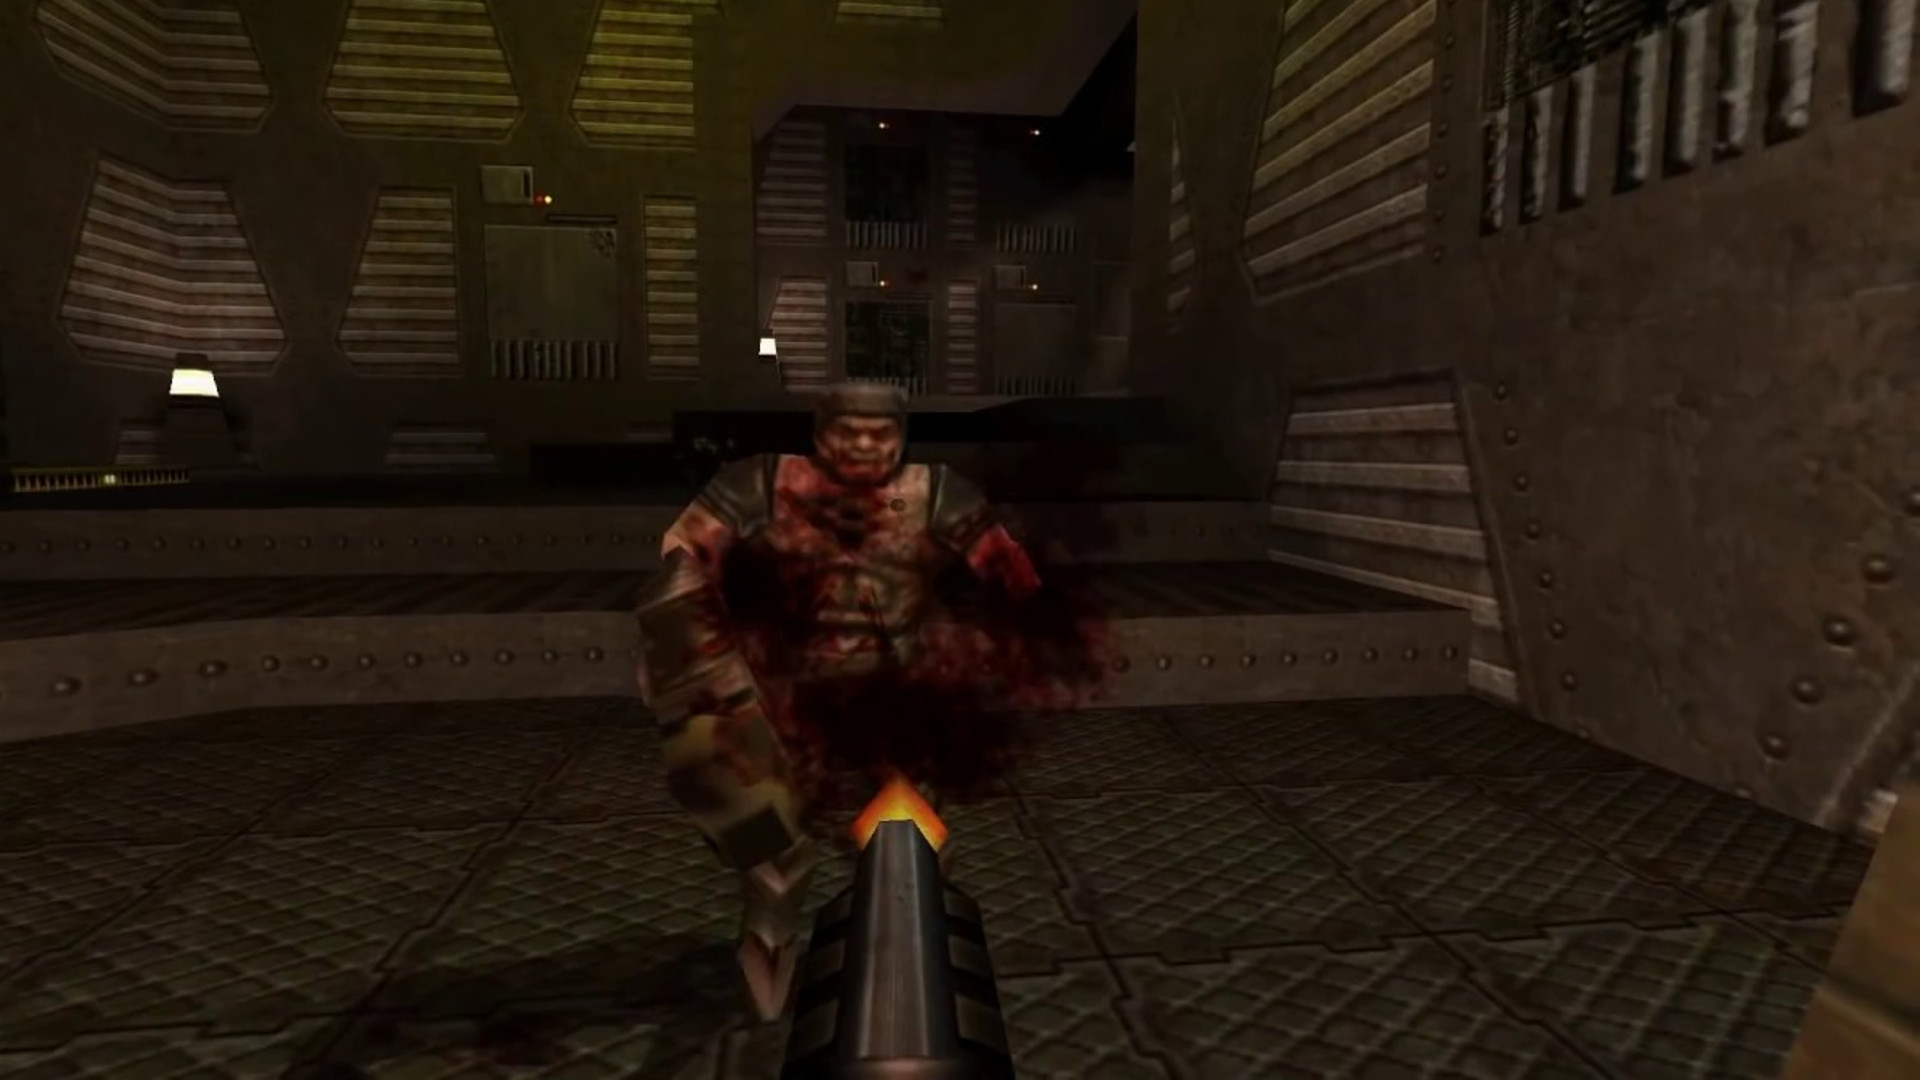 Quake released this week in Gaming History.